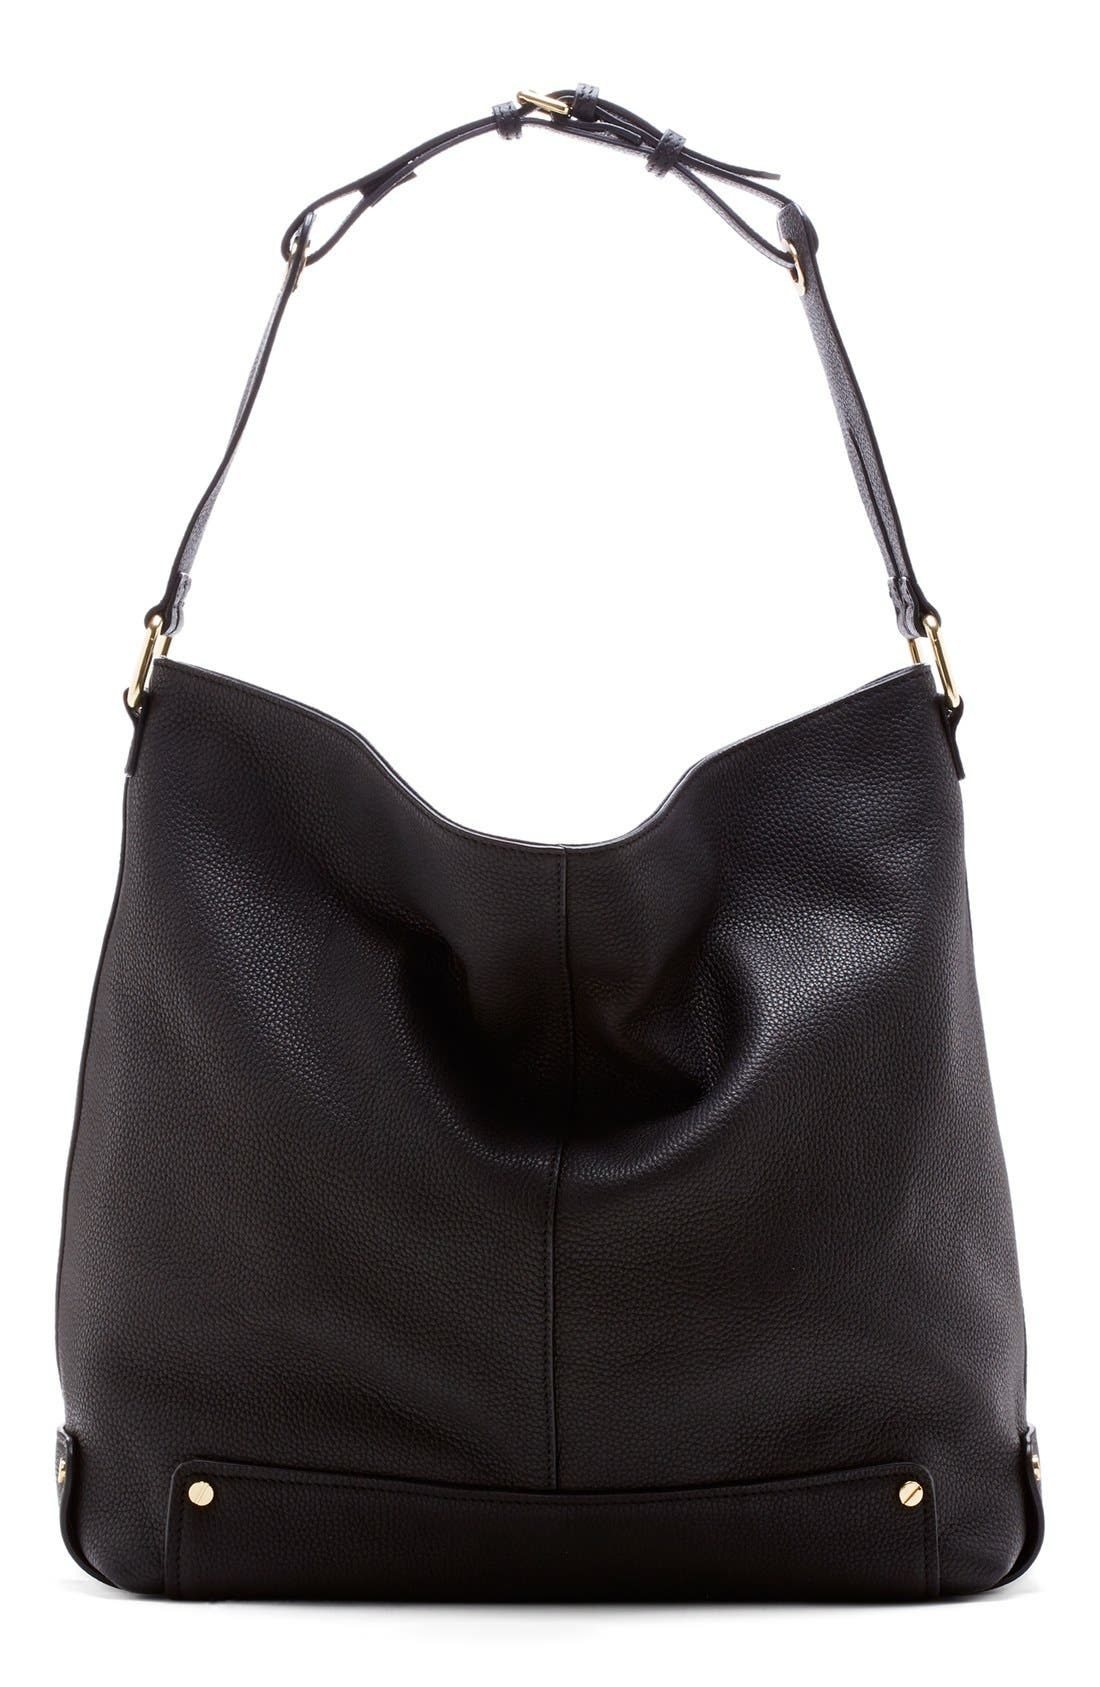 Main Image - Vince Camuto 'Jill' Leather Hobo